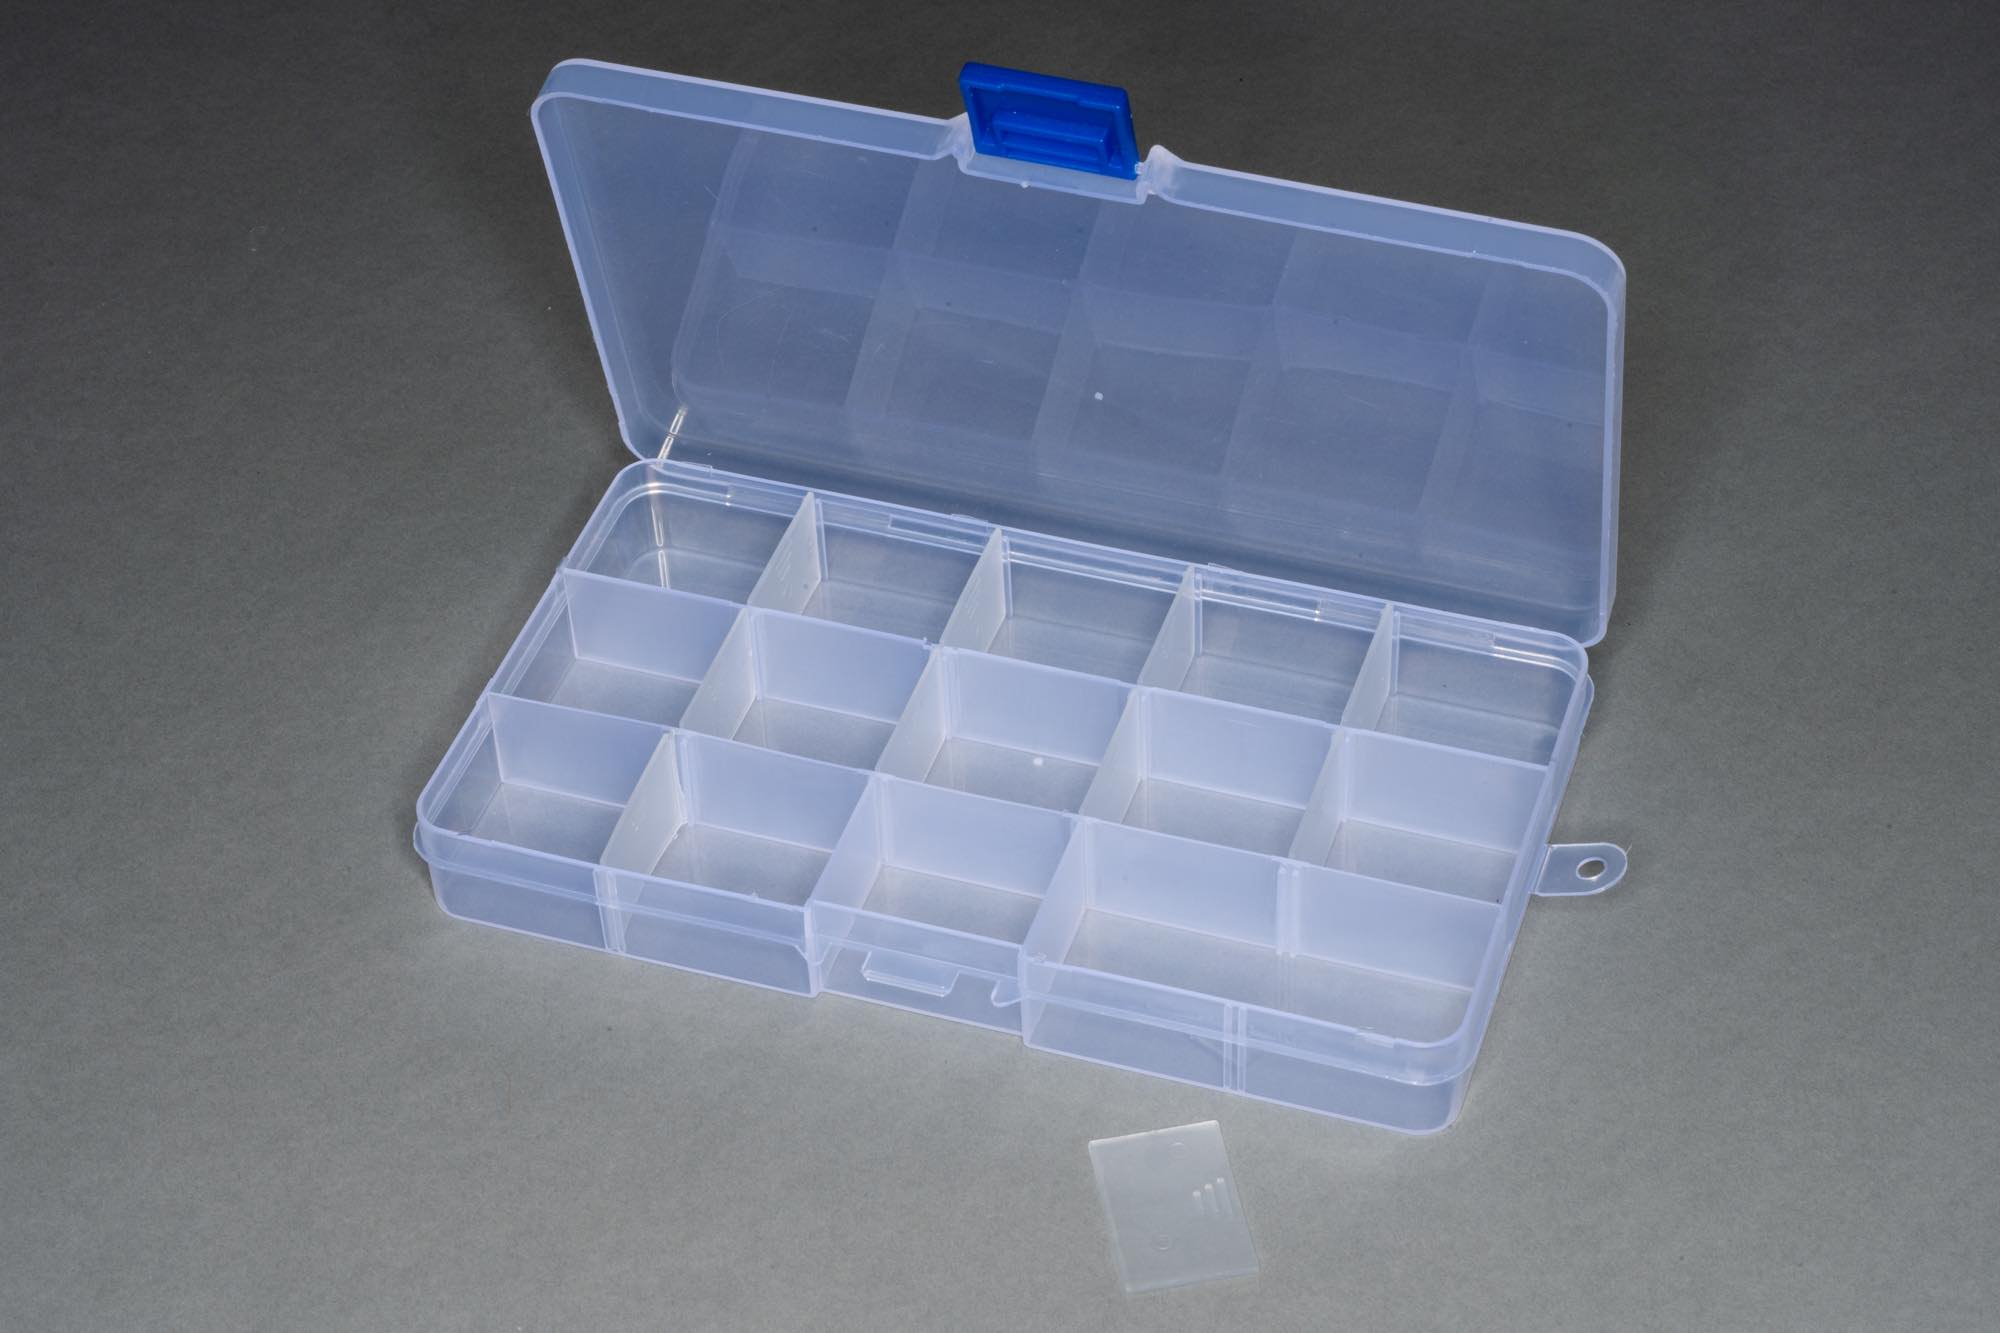 Small Organiser, 15 Sections, Removable Dividers 17x10x2.2cm